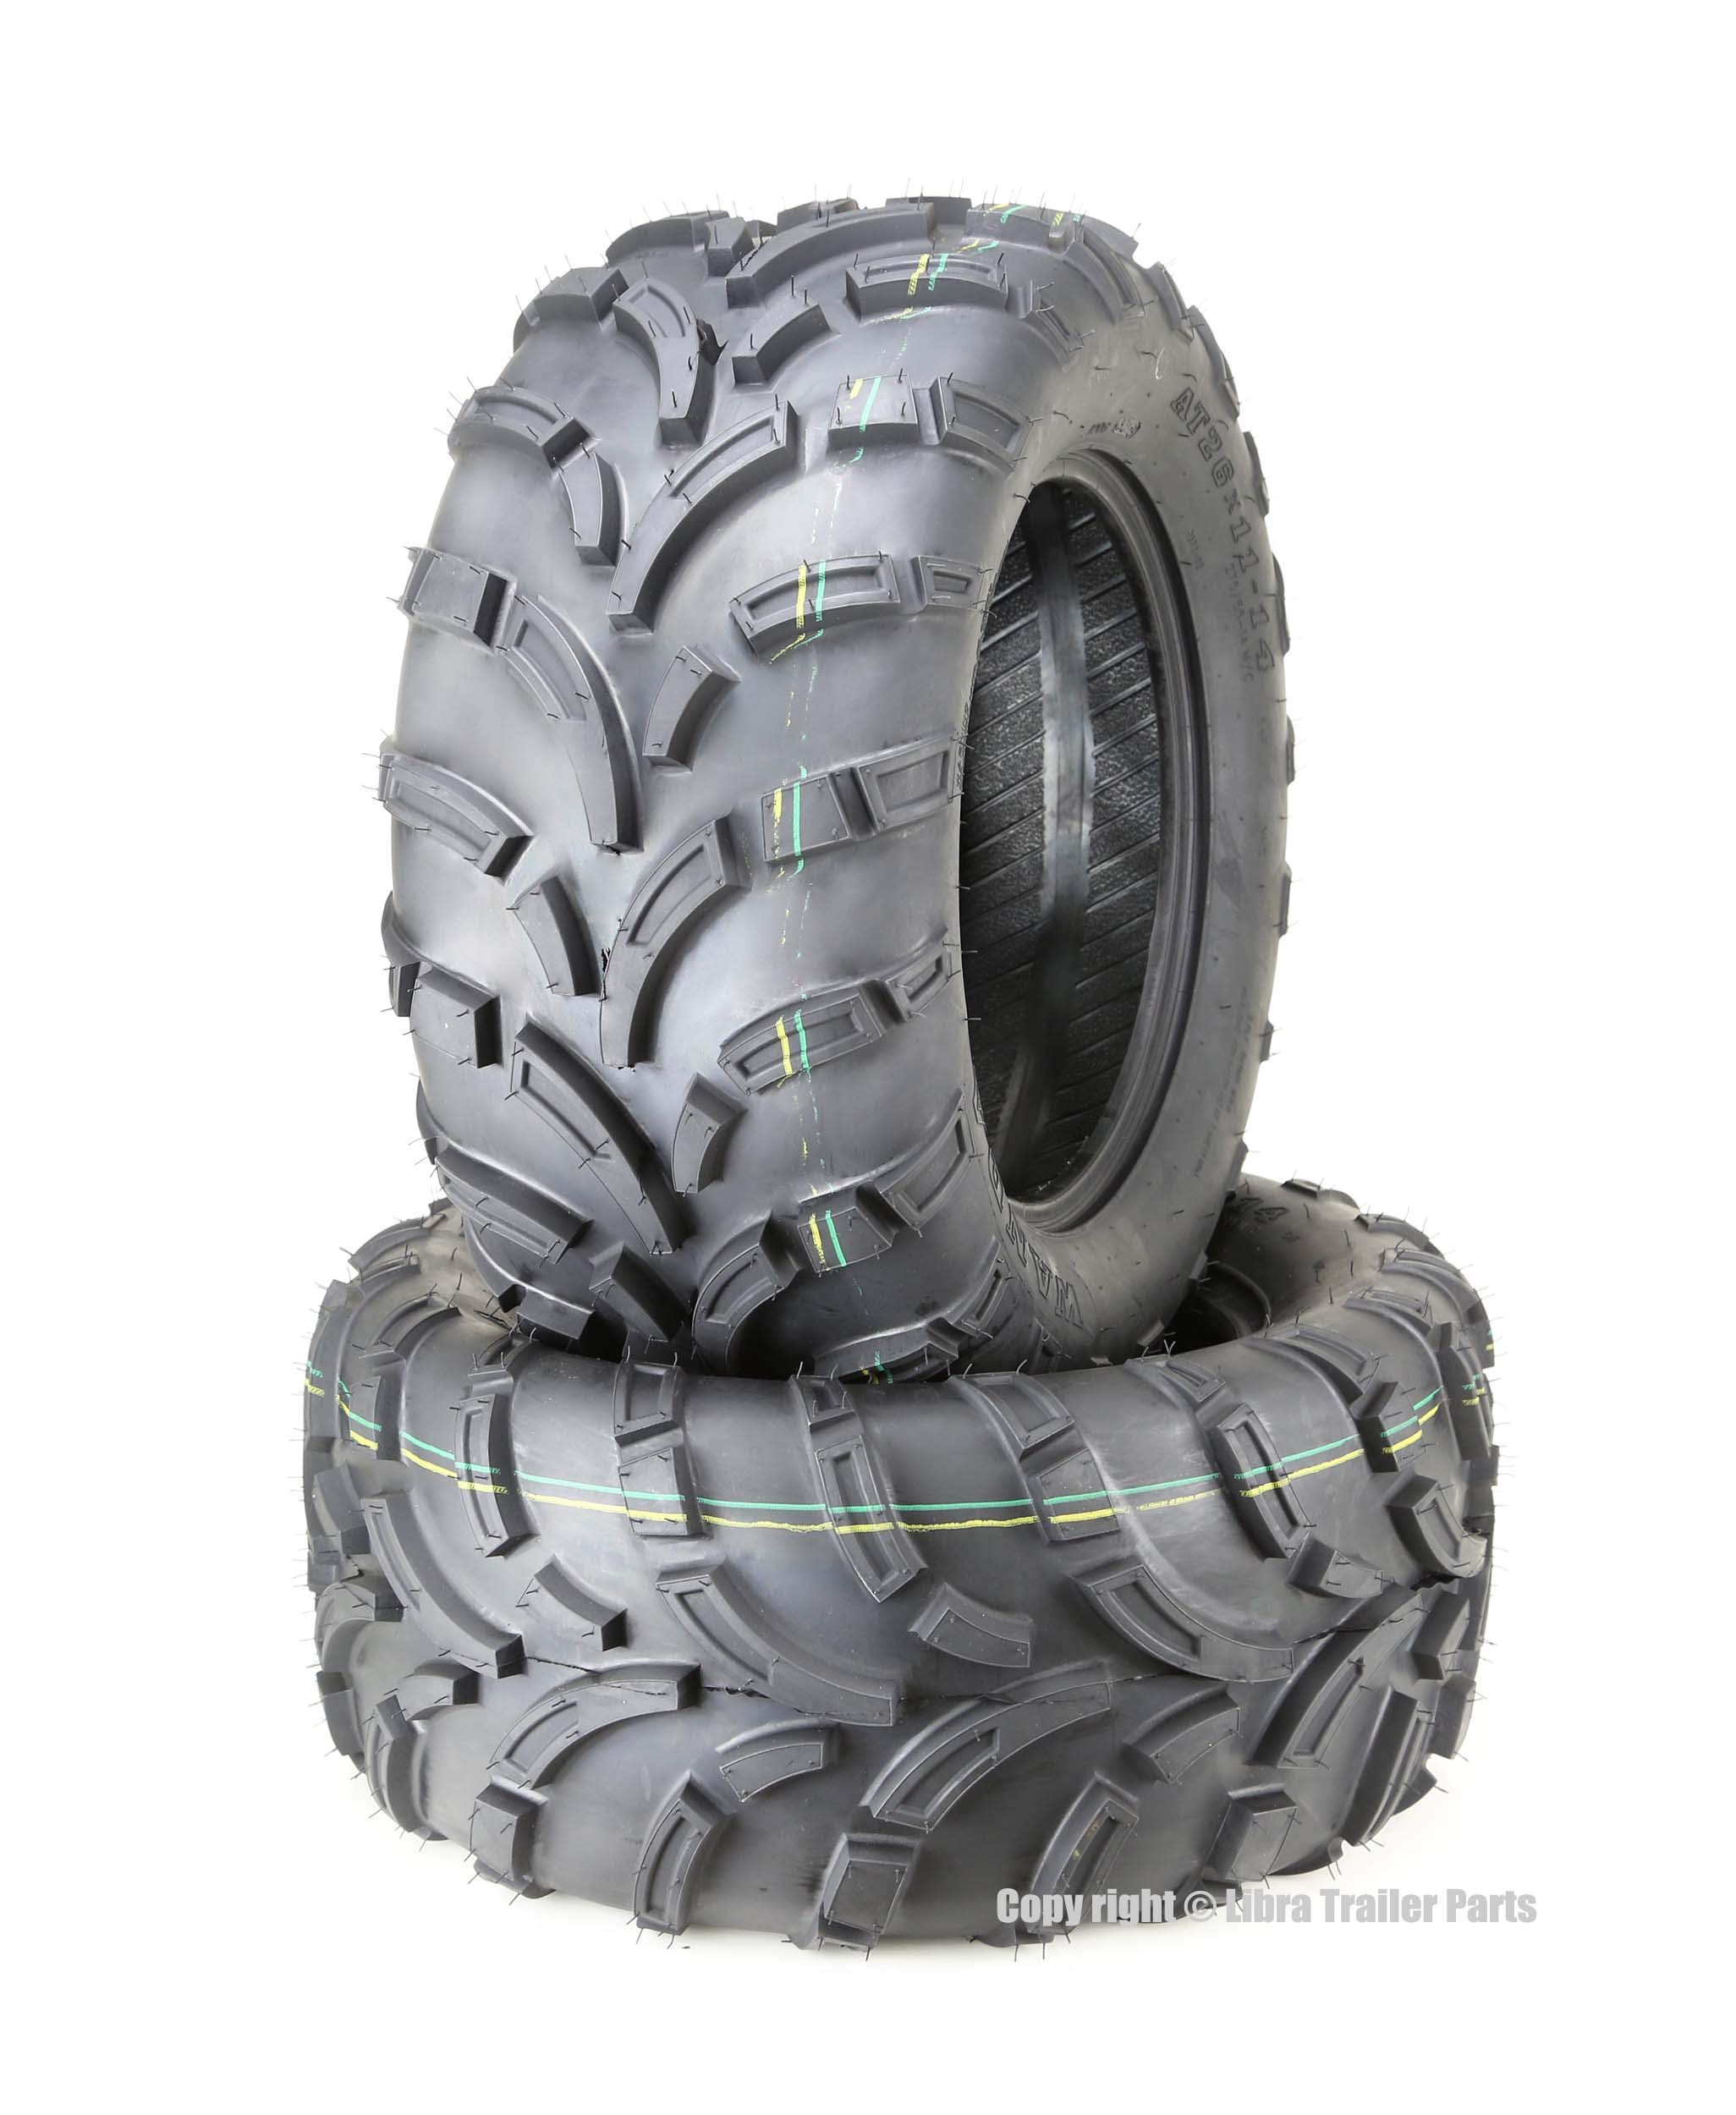 Set of 2 WANDA ATV UTV Tires 26x11-14 26x11x14 6PR Lit Mud ... by WANDA